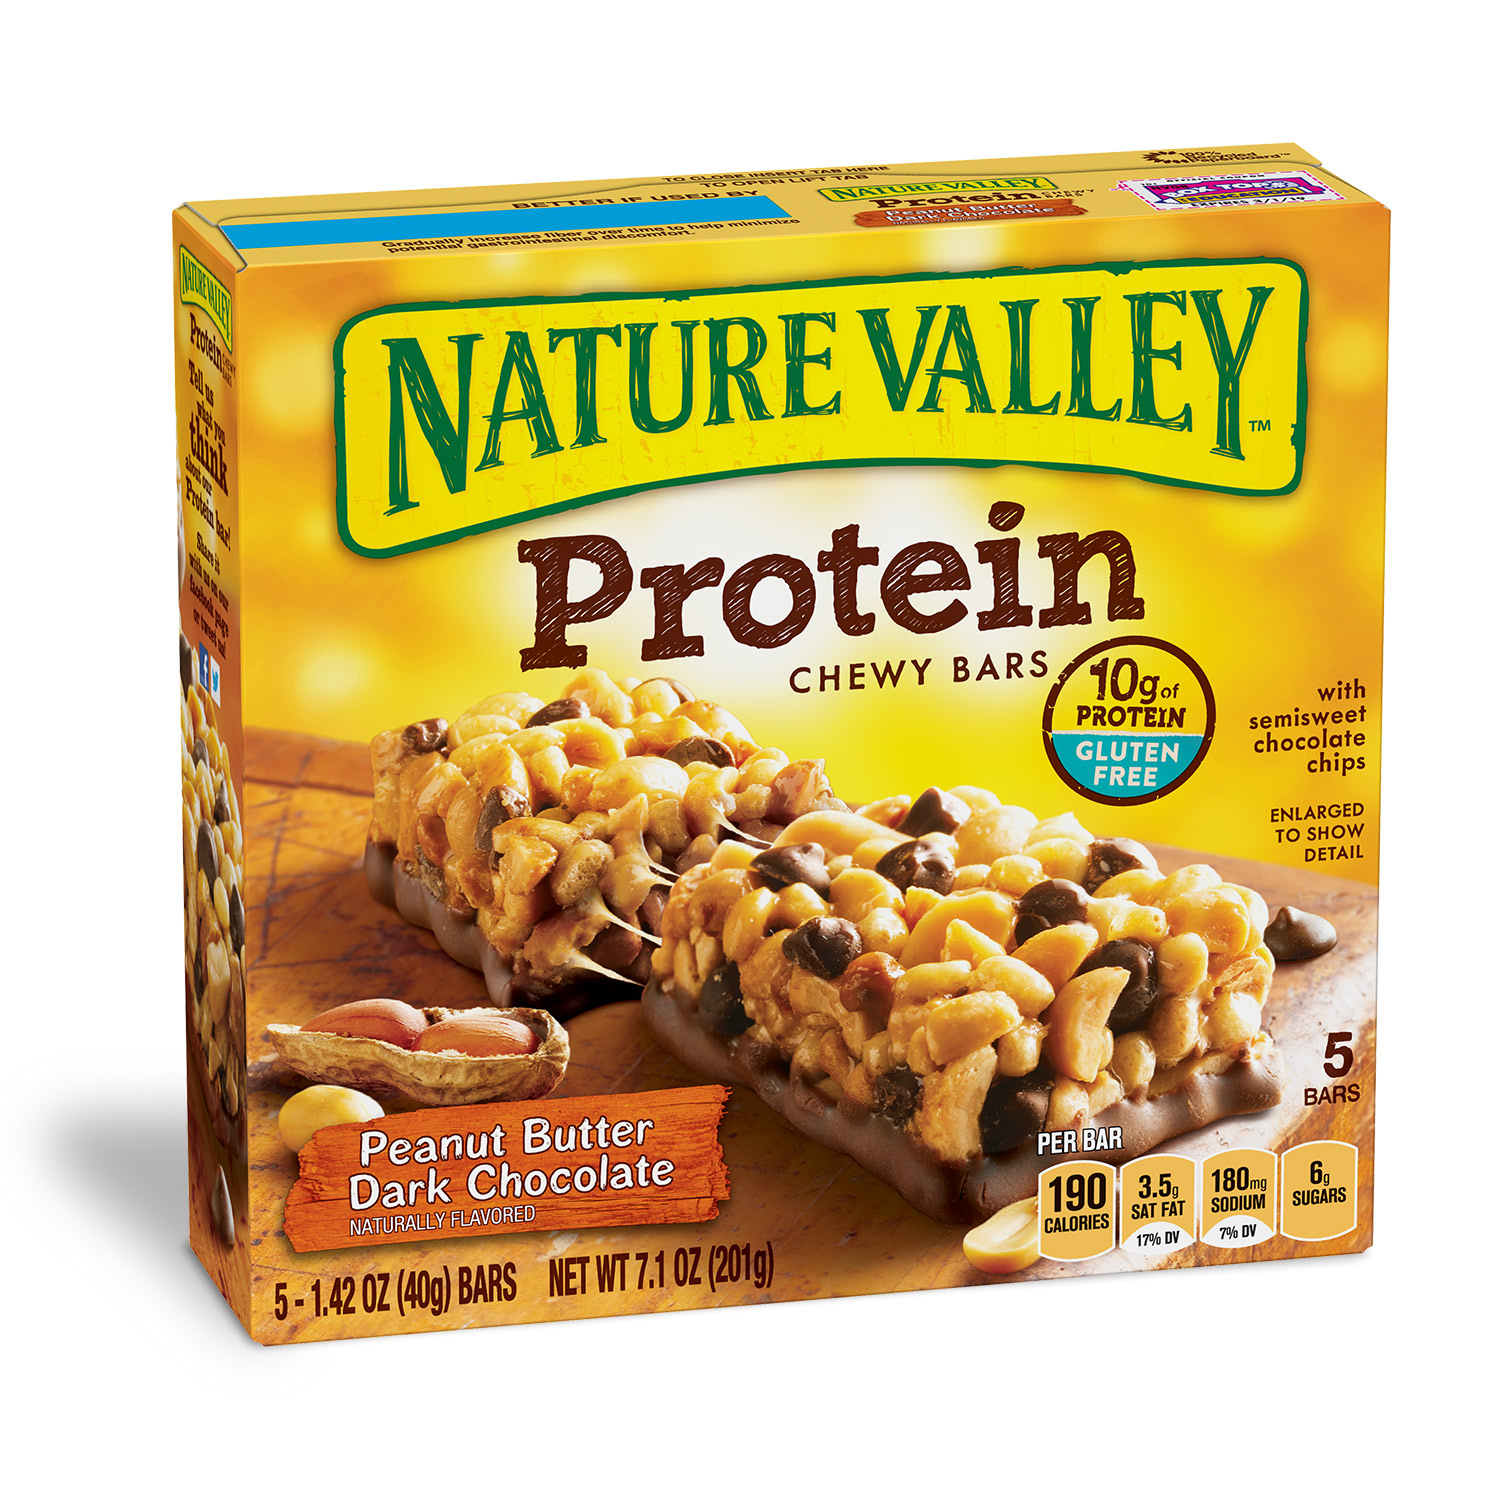 Nature Valley Protein Chewy Bar Gluten Free Peanut Butter Dark Chocolate 1.42 oz, 5 Bars Box